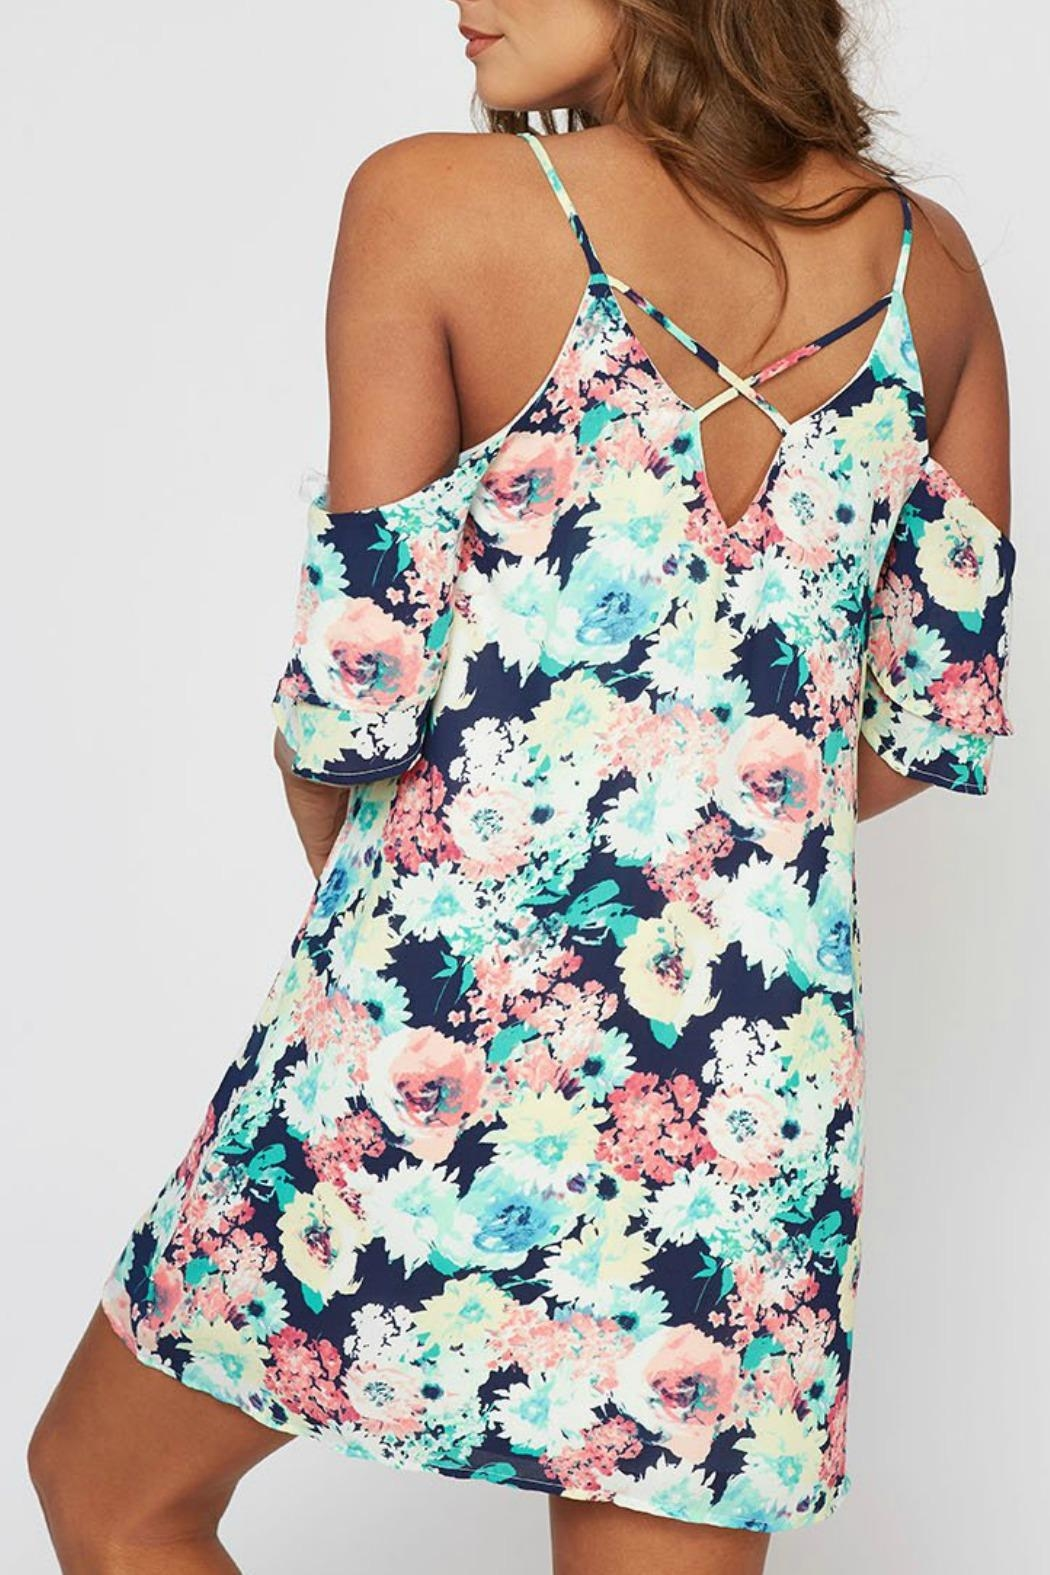 Peach Love California Veronica Floral Dress - Front Full Image